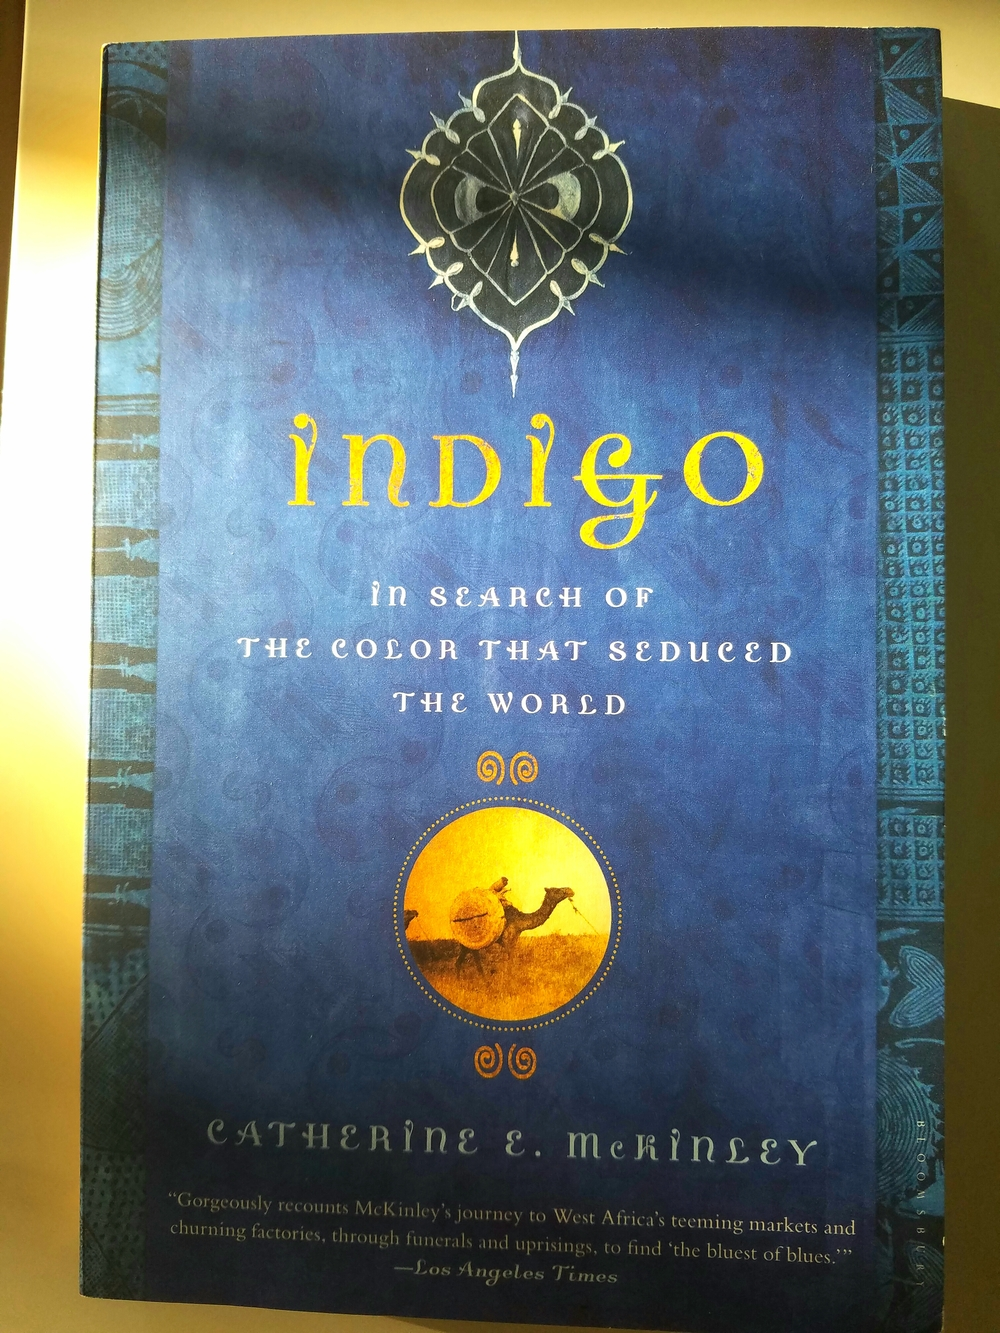 Indigo: In seach of the color - the kl creative